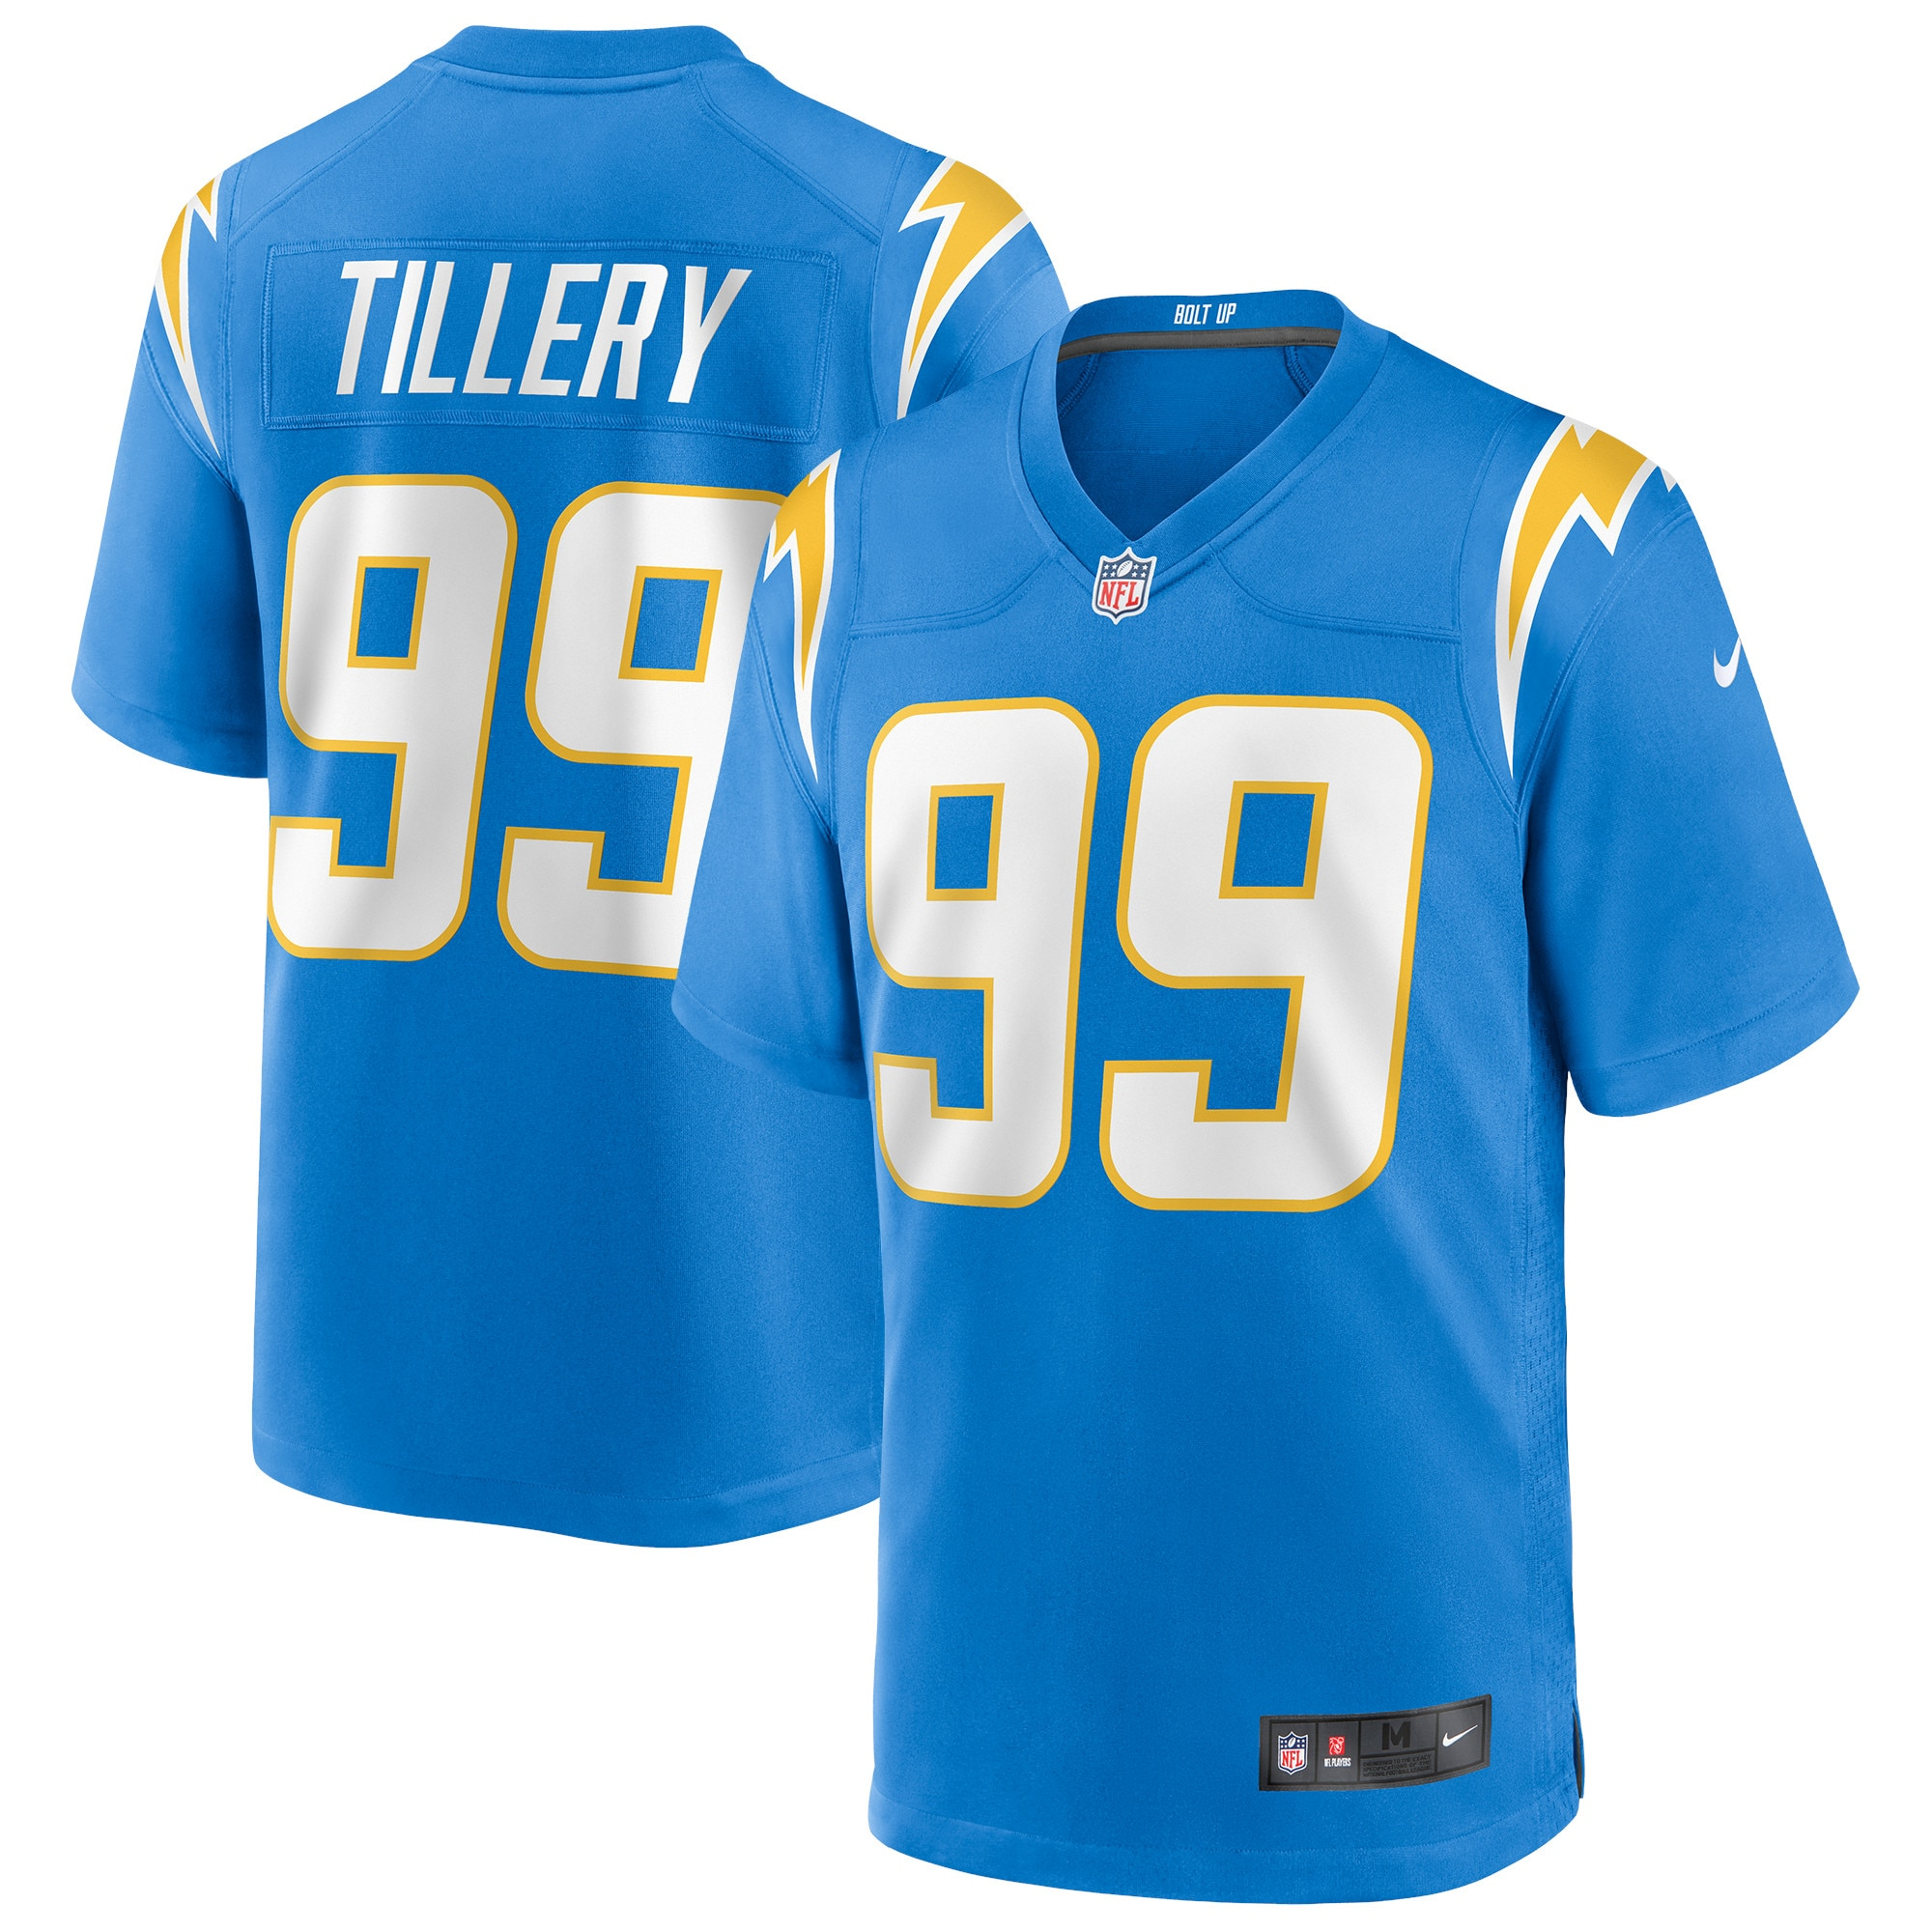 Jerry Tillery Los Angeles Chargers Nike Game Jersey - Powder Blue